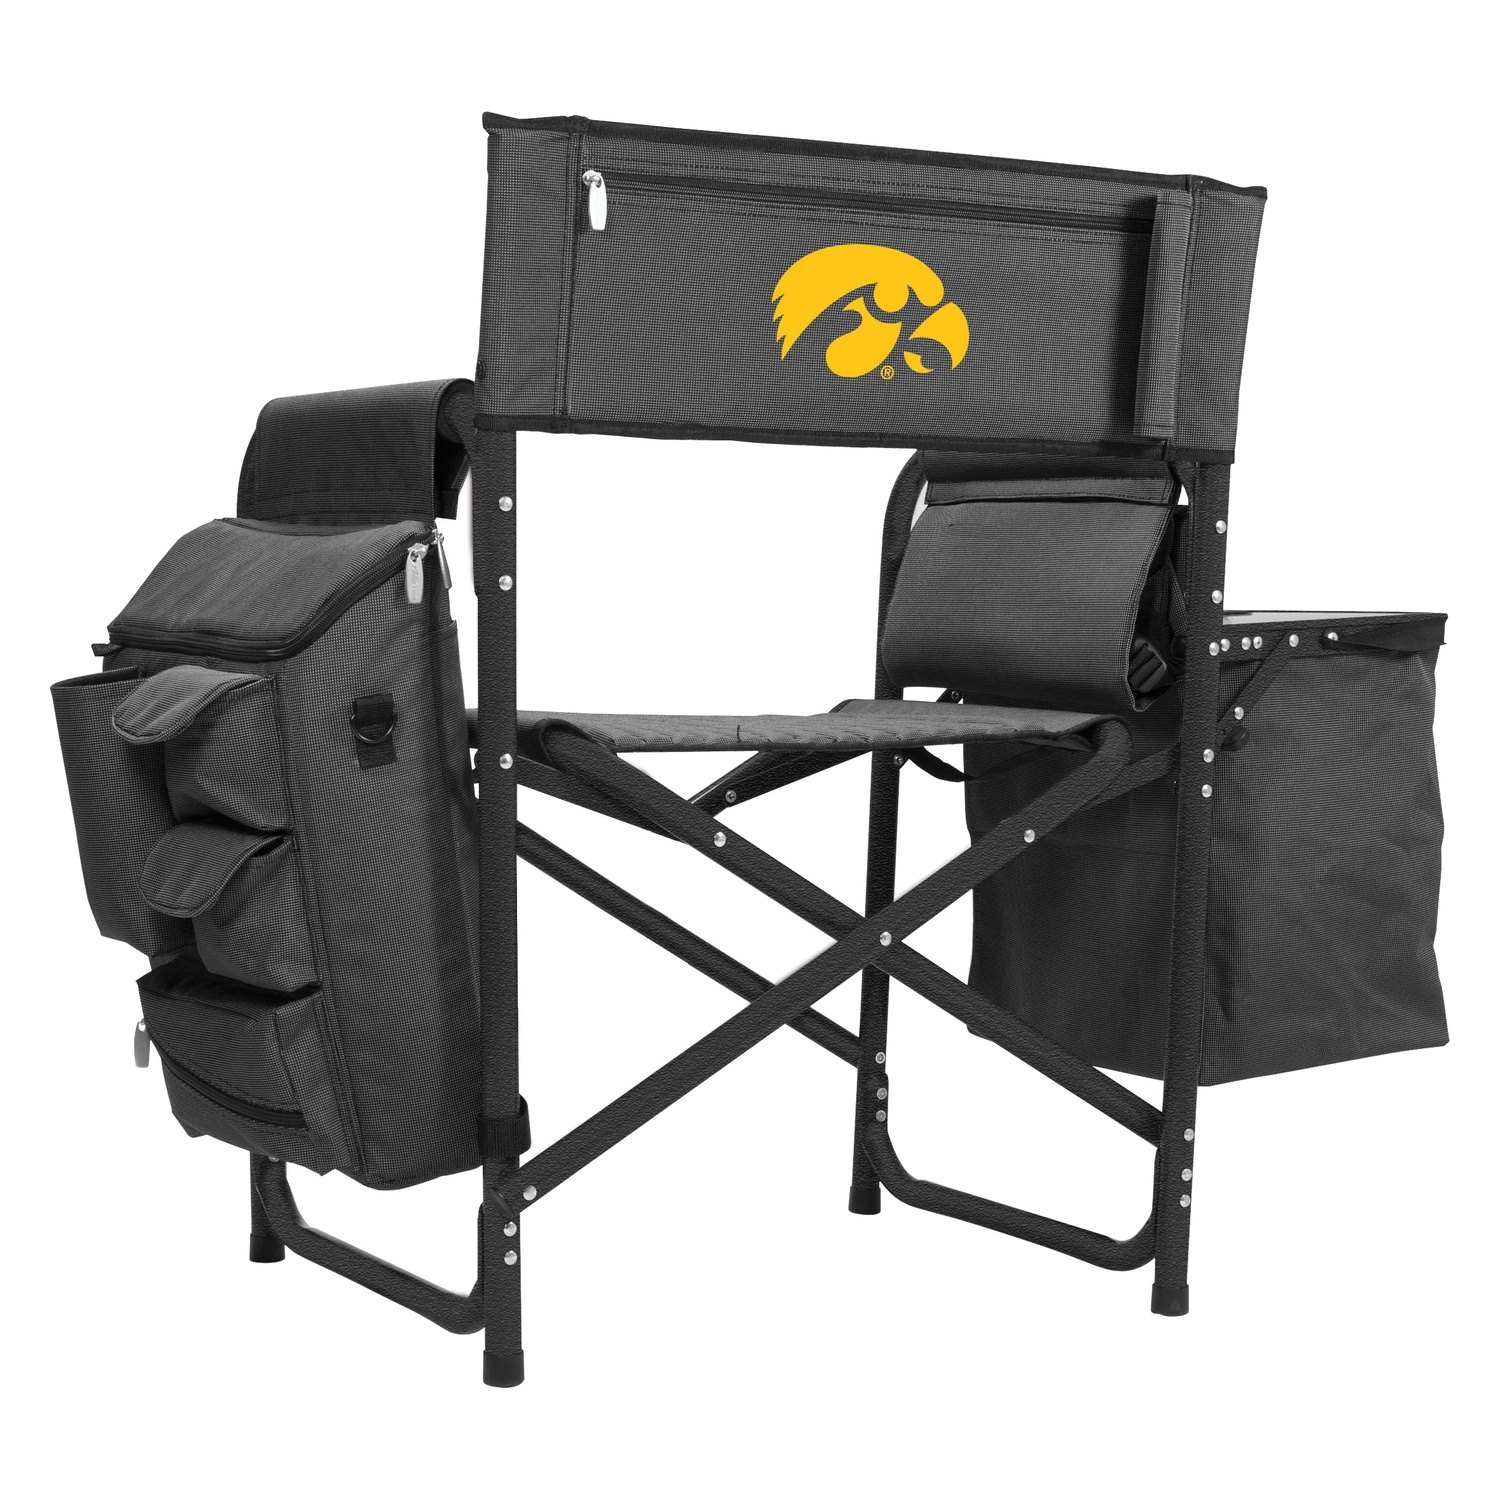 Sensational Picnic Time 807 00 679 224 0 Ncaa Fusion Iowa Hawkeyes Gray Black Camp Chair Beatyapartments Chair Design Images Beatyapartmentscom